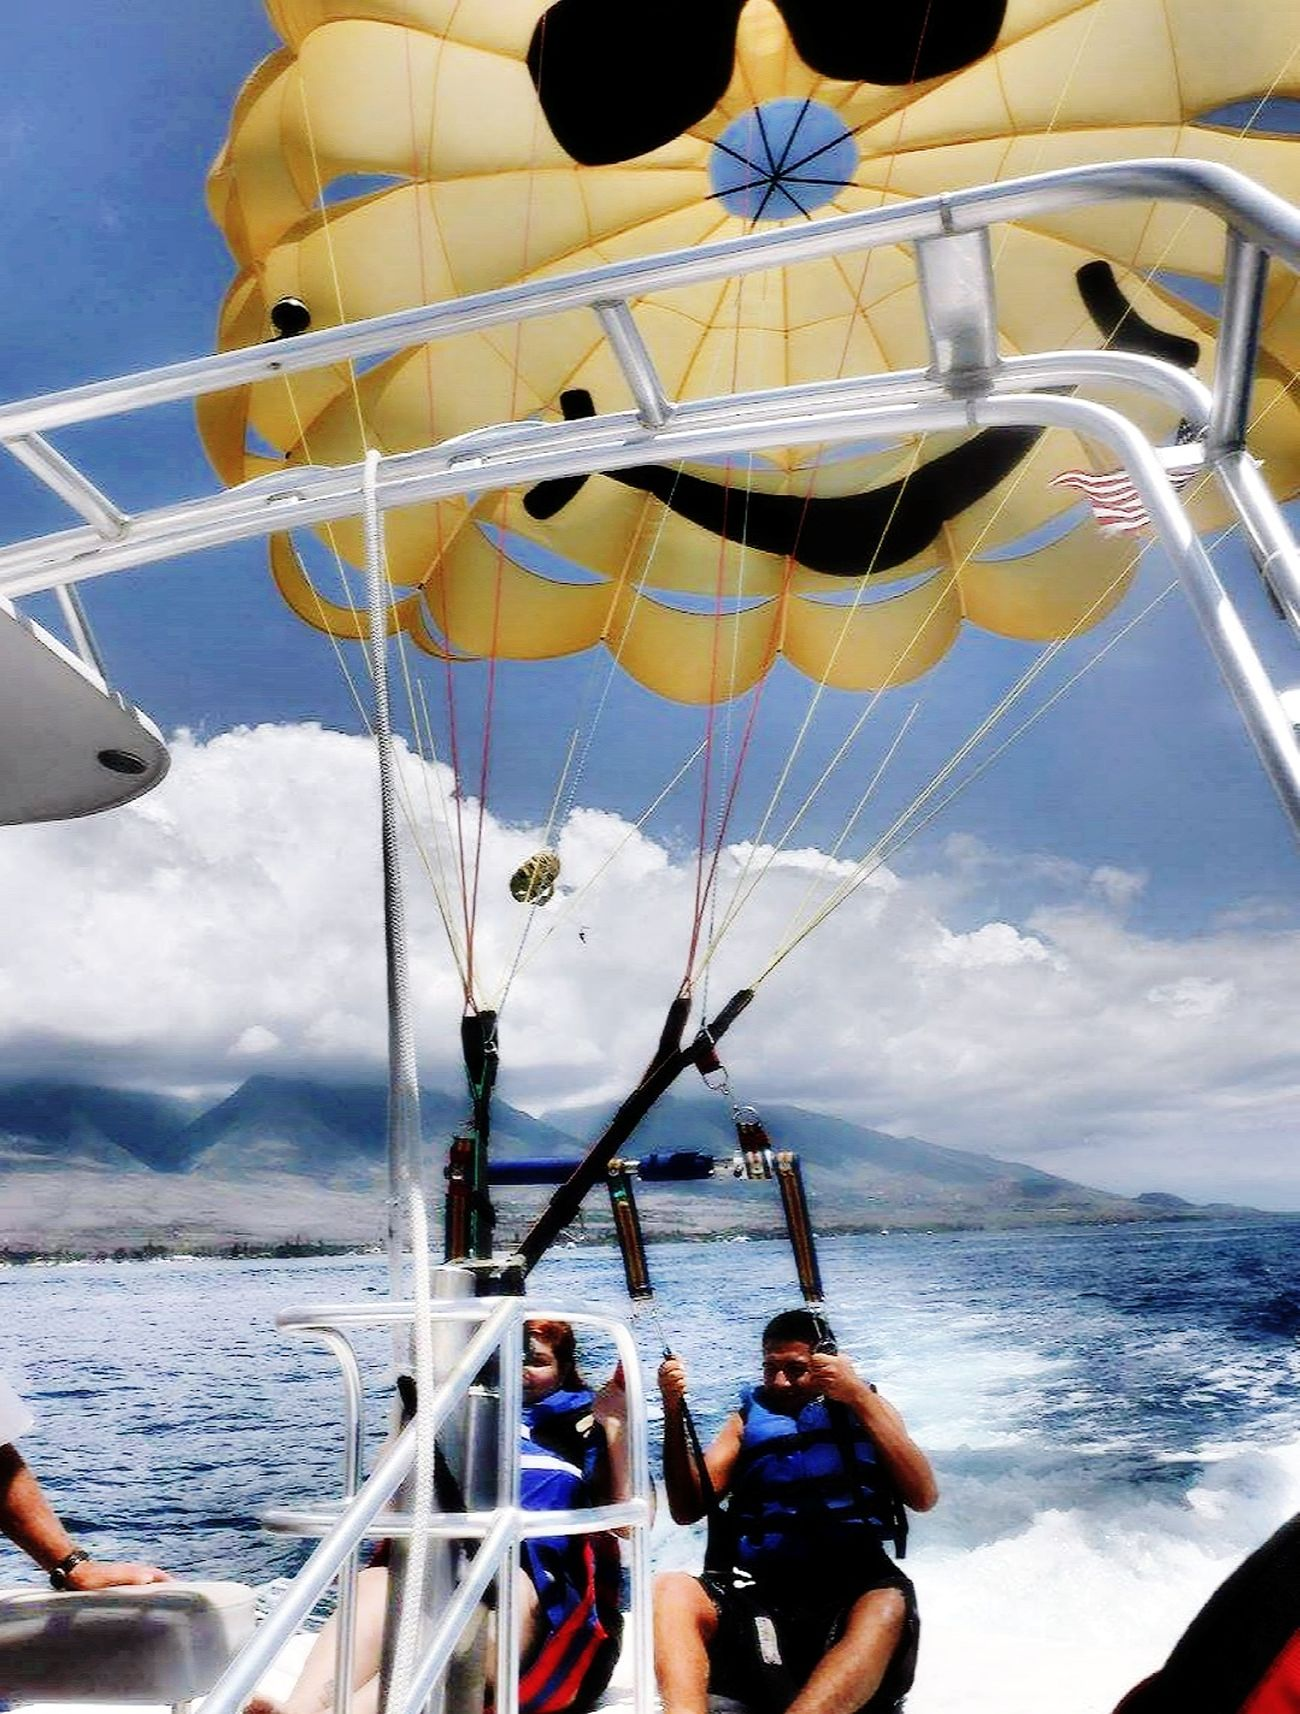 Nephew ♥ Hawaii Life 808  Parasailing Amazing Experience Beach Photography